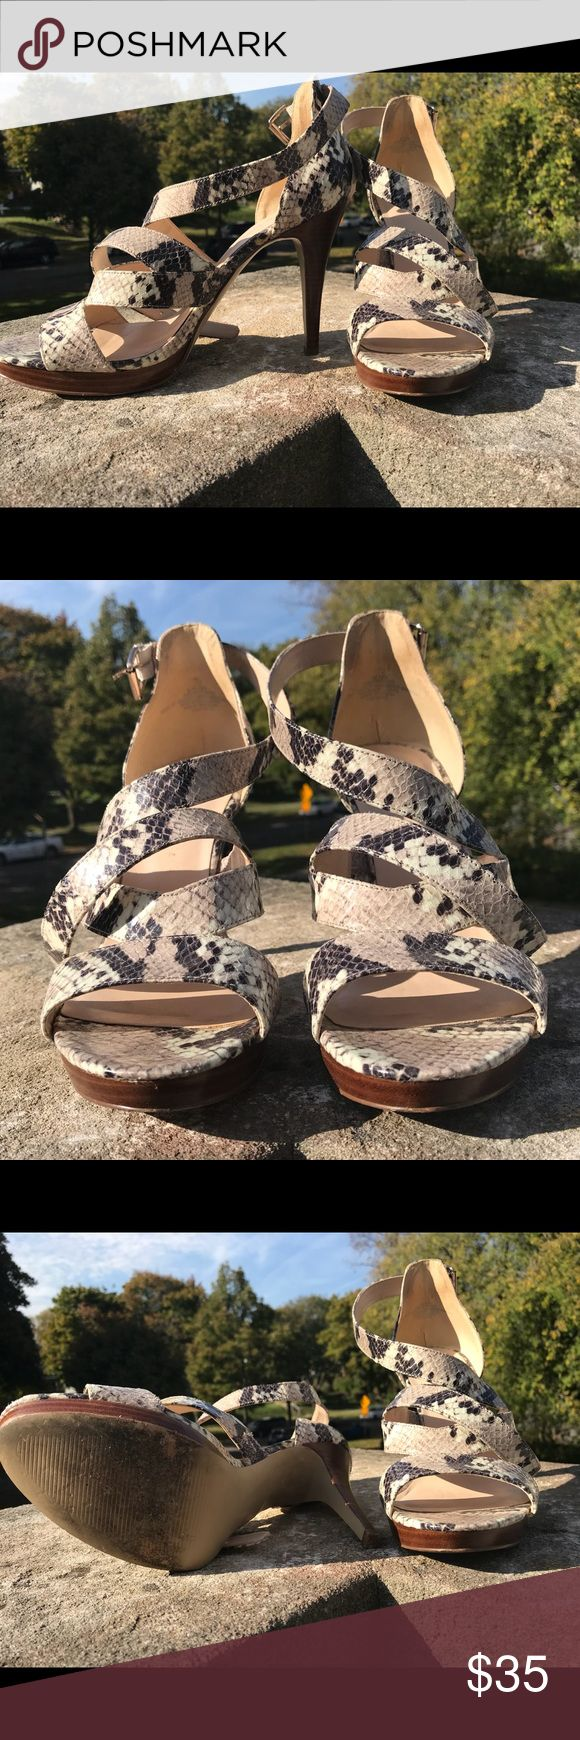 Nine West Animal Print strappy sandals, Size 10.5 Gorgeous Animal Print Strappy Sandals. Great for jazzing up a boring black dress, GNO or date night! Like new! Nine West Shoes Heels